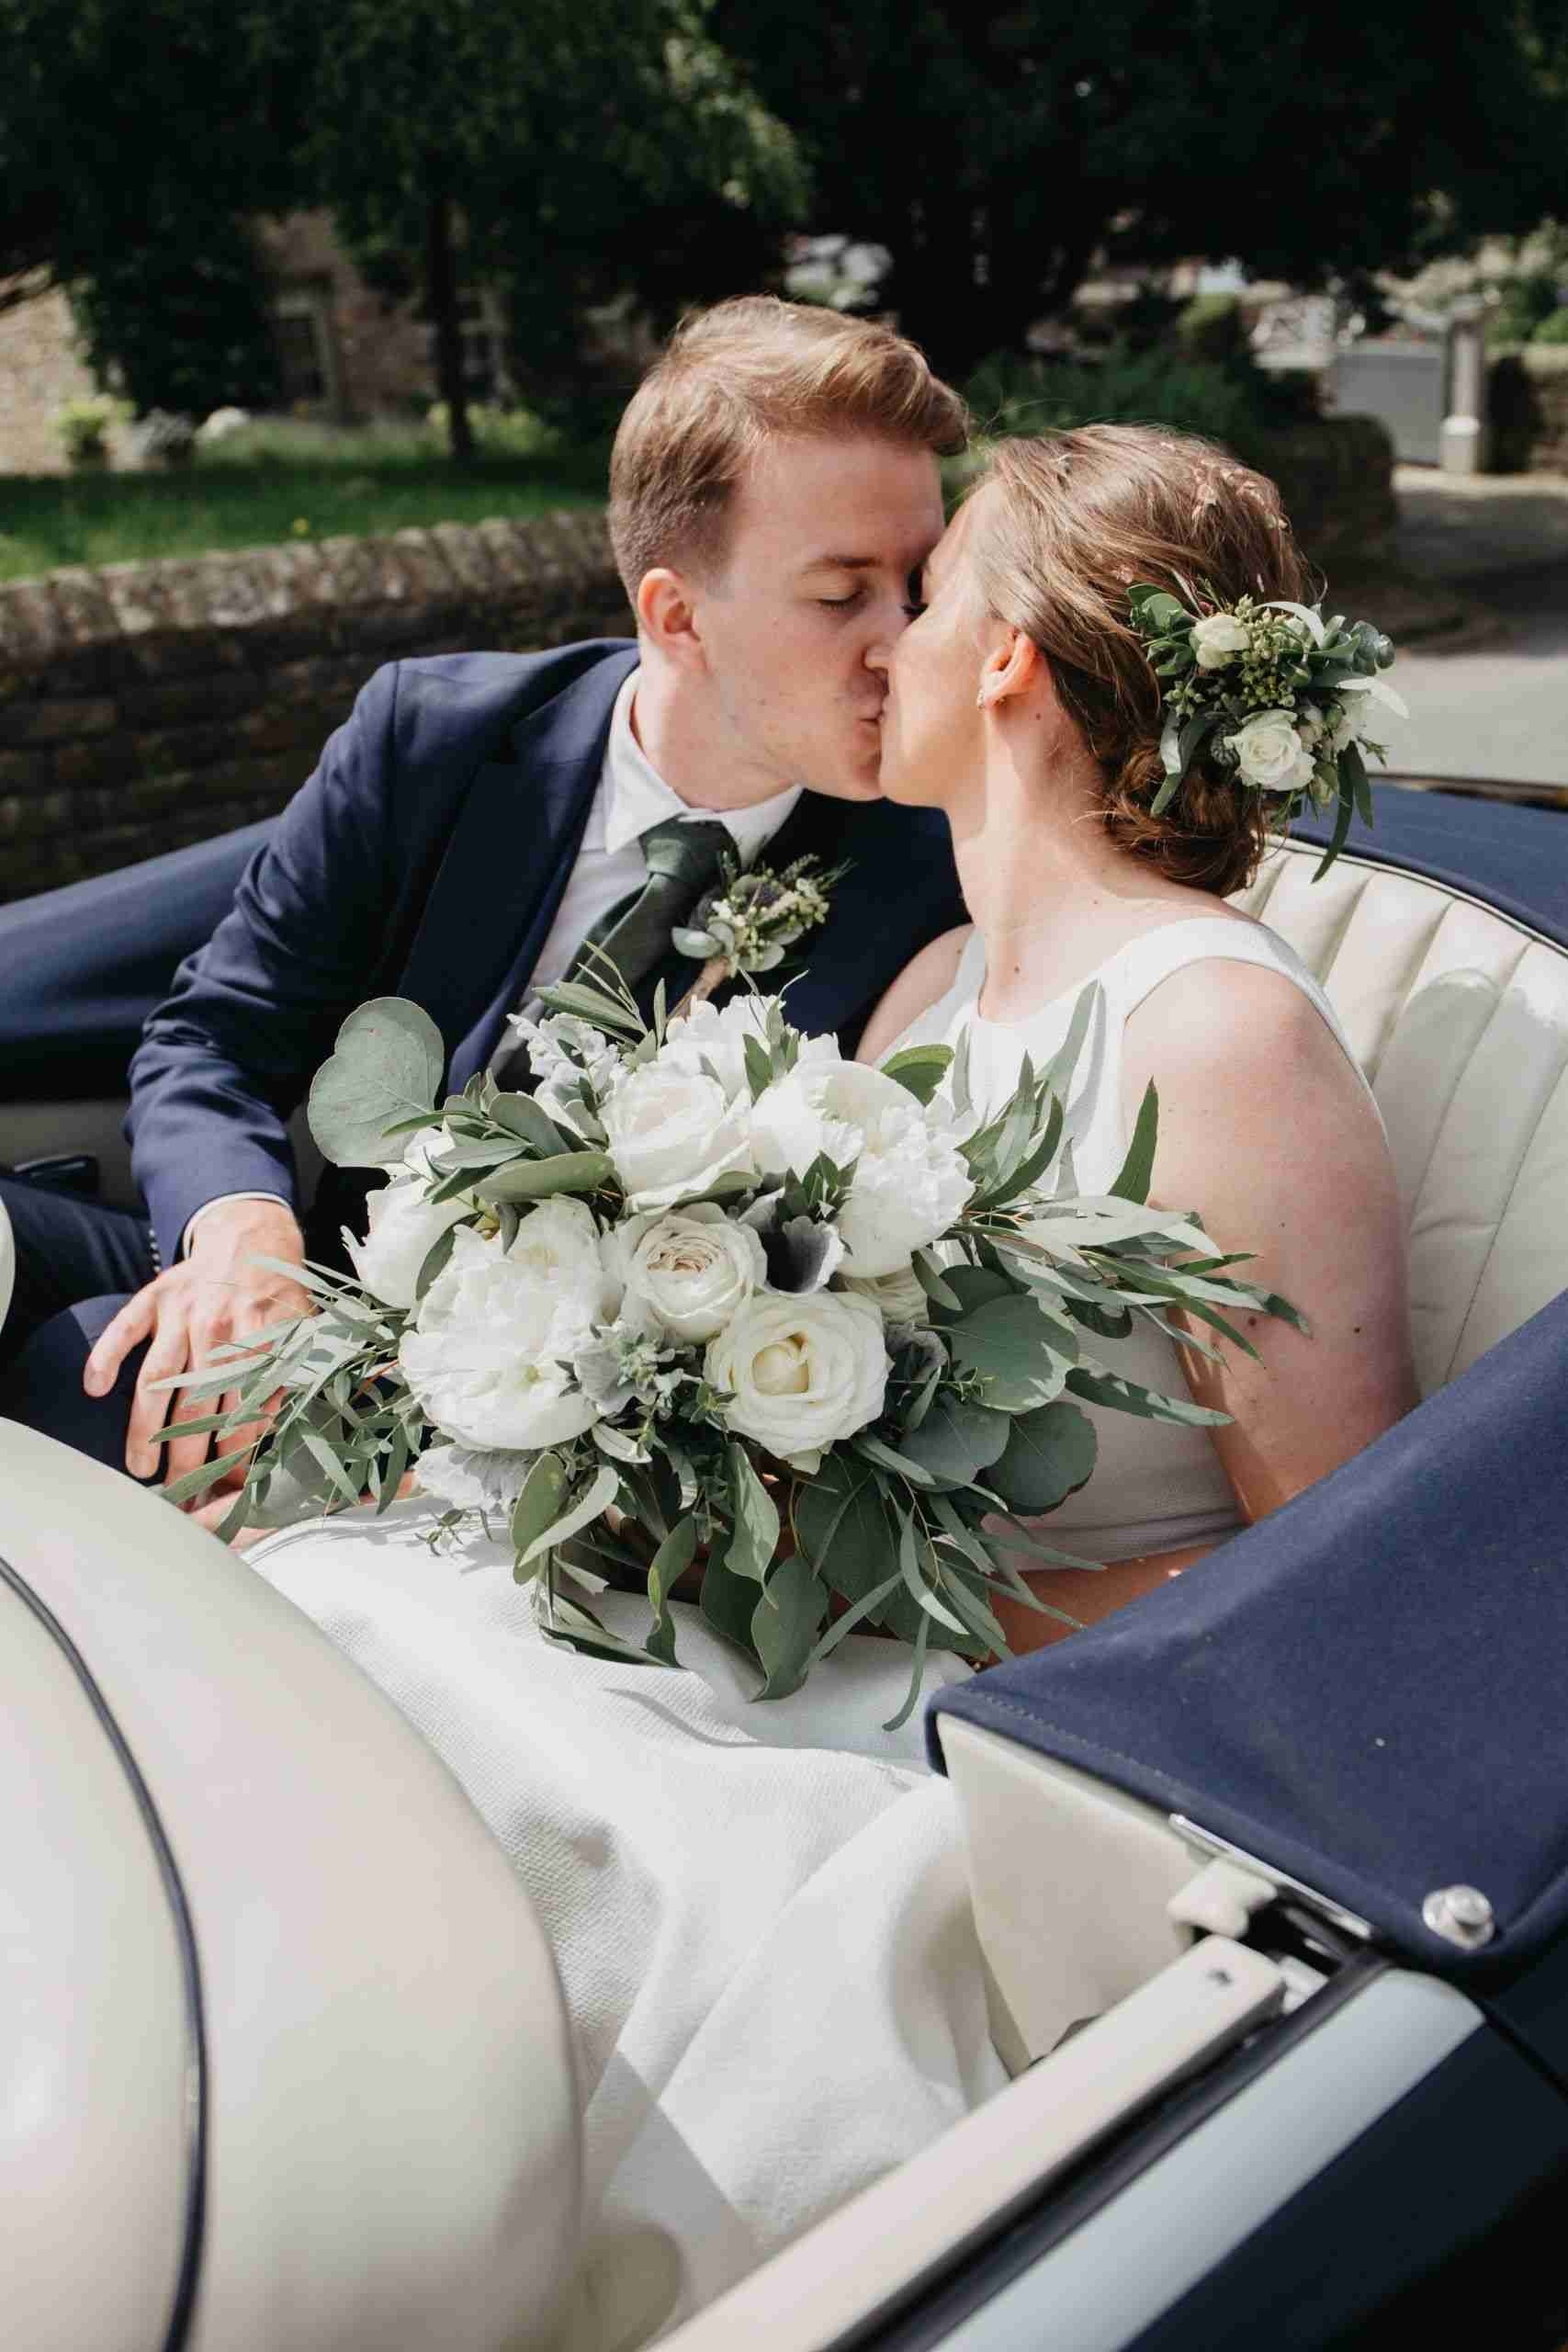 Real bride kisses groom, showing off loose, curled updo with foliage flower comb.